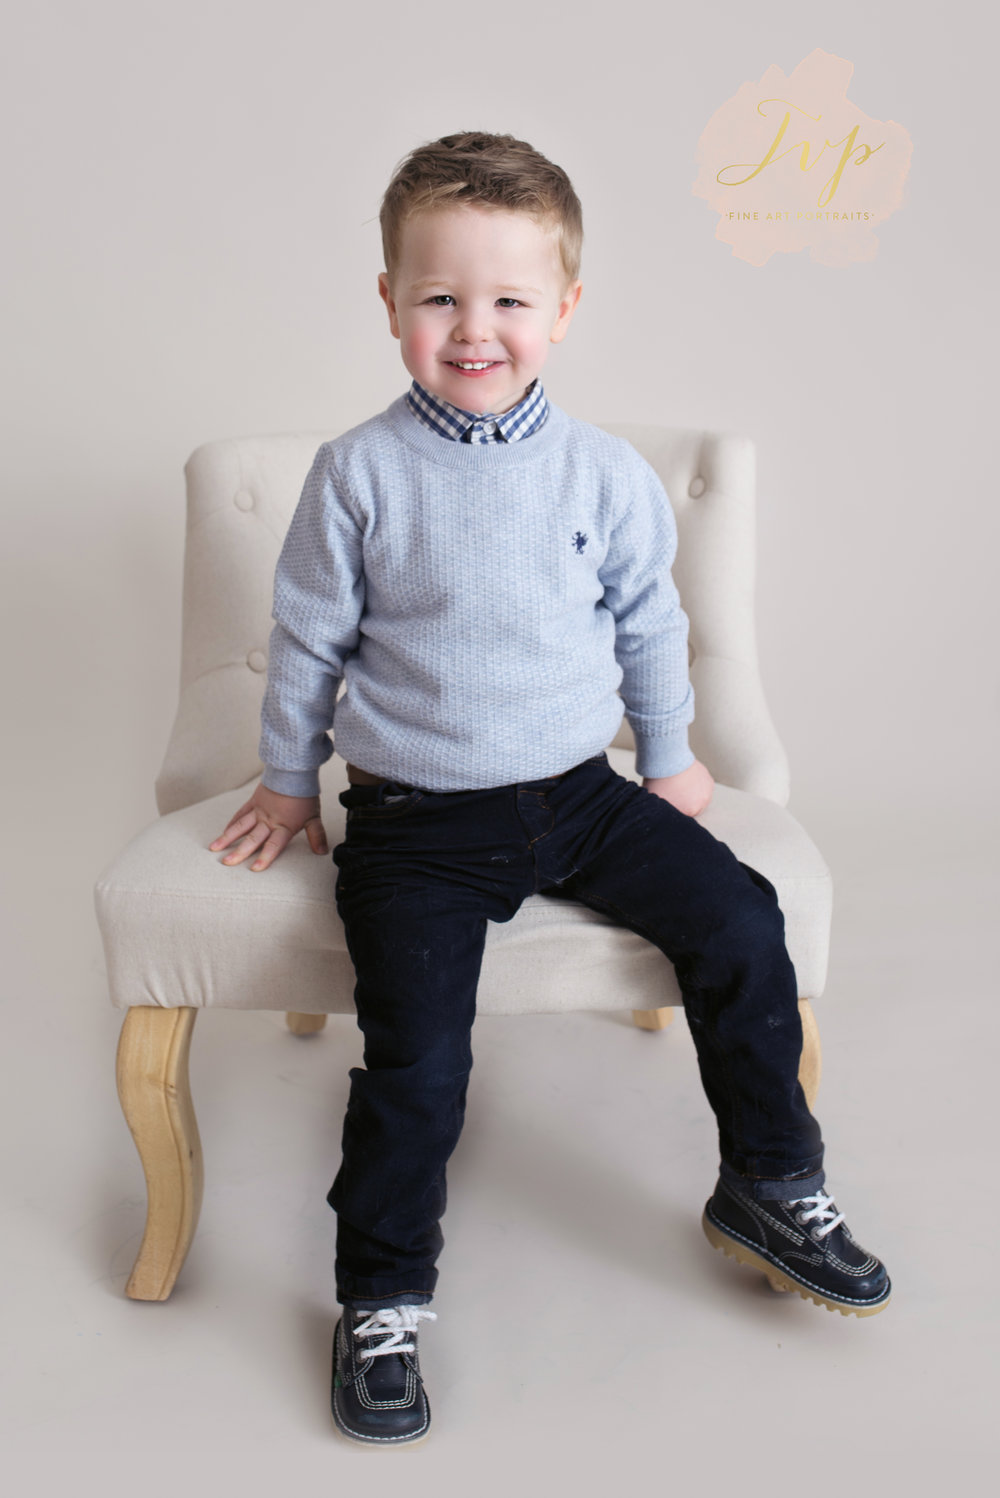 boy-on-chair-family-photographer-glasgow